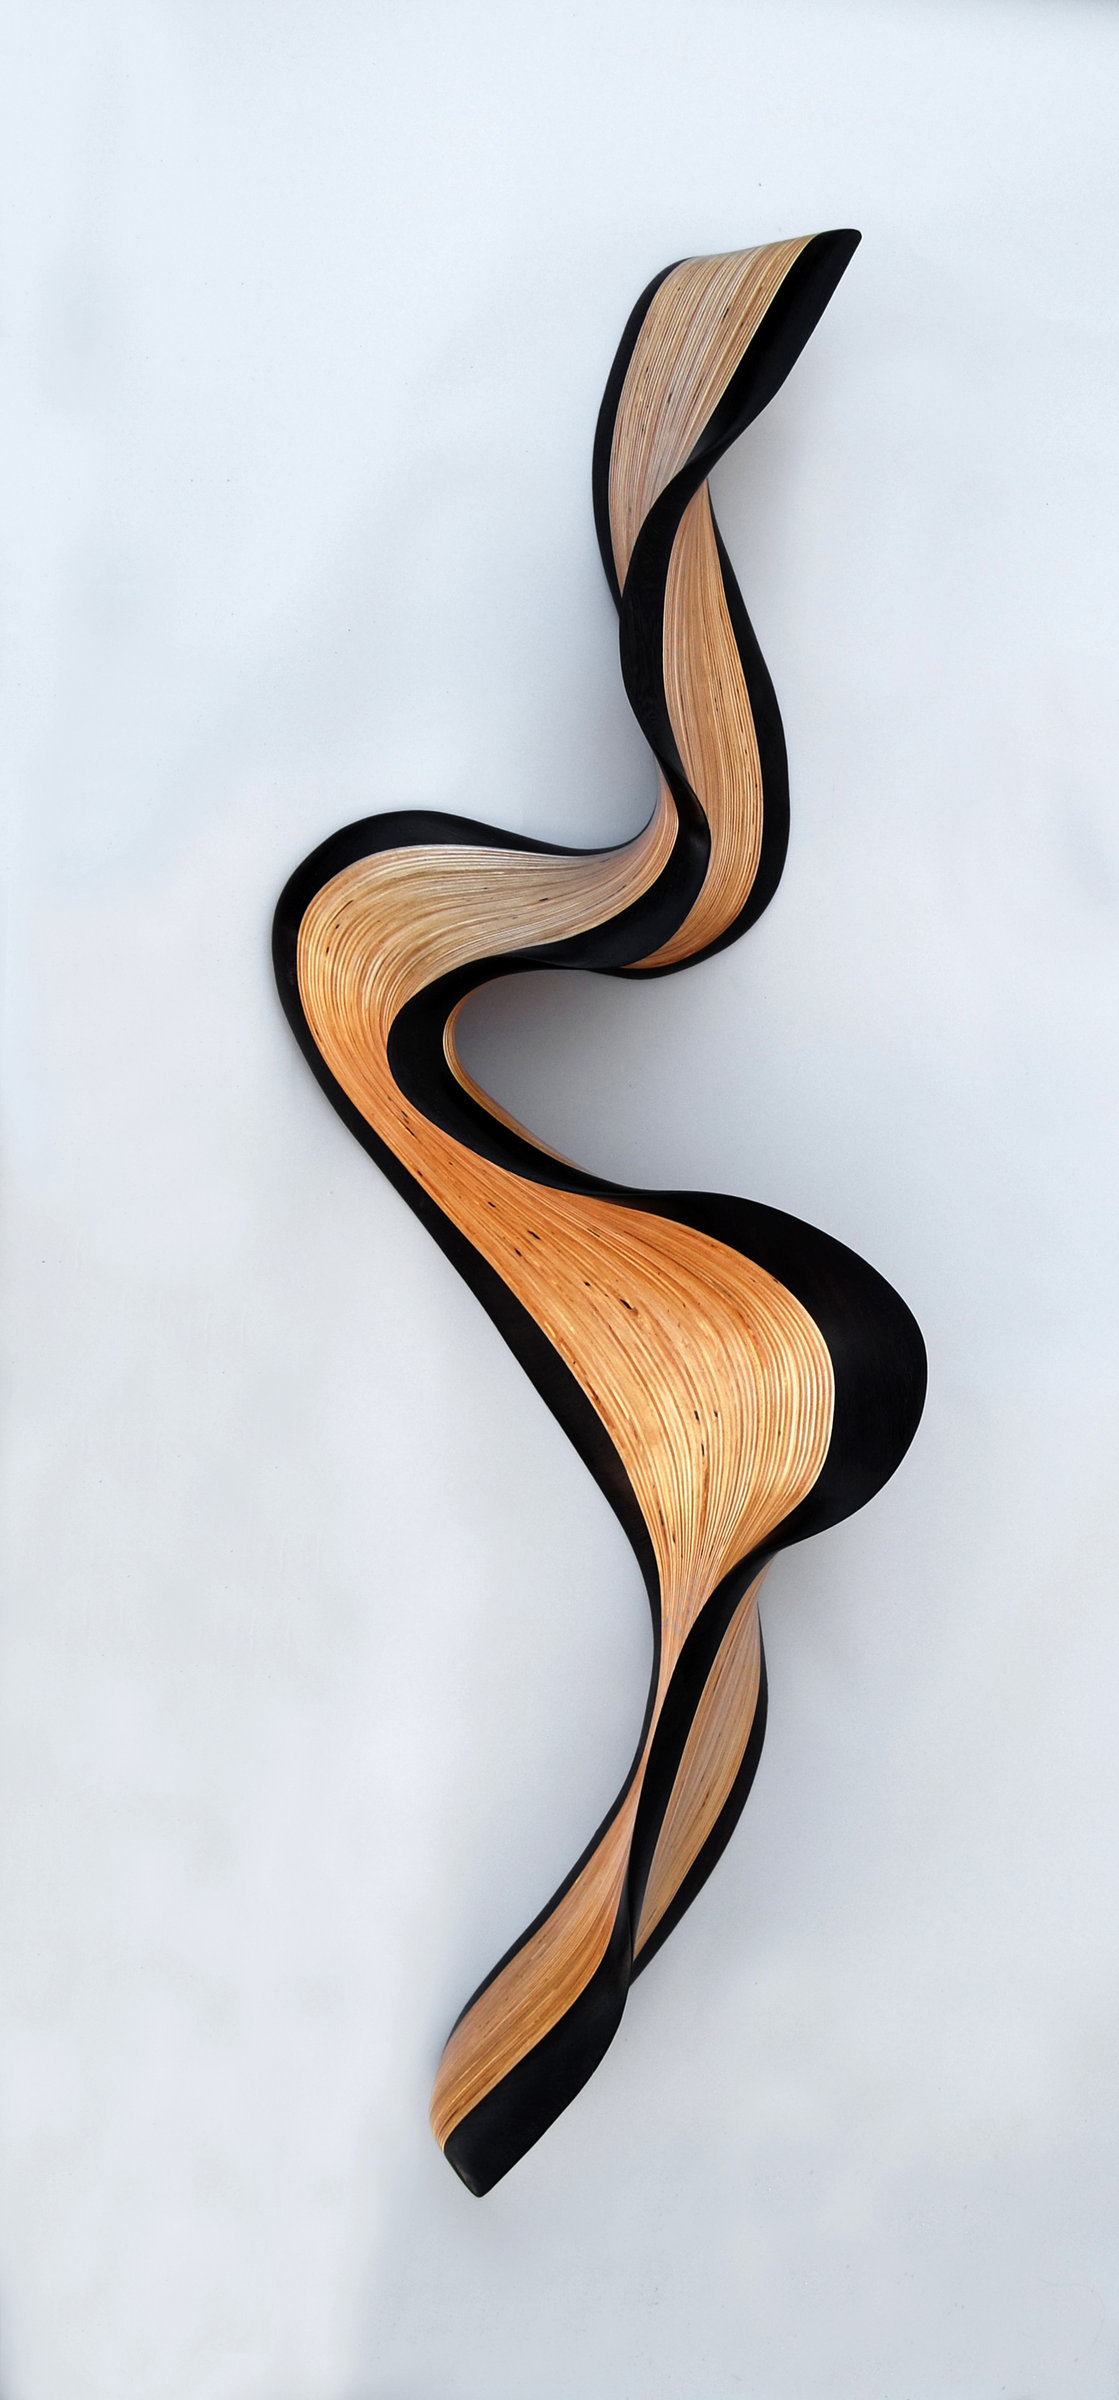 Artful Home Philadelphia Wenge Wave By Kerry Vesper Wood Wall Sculpture